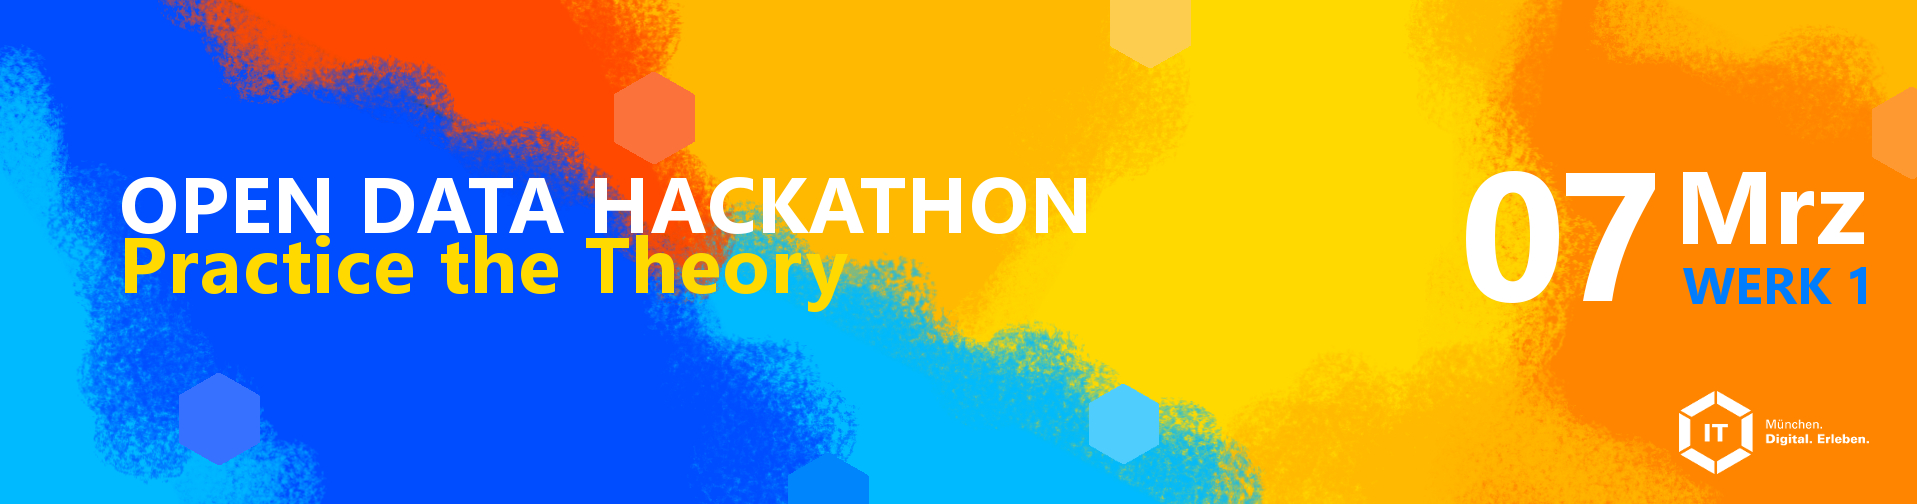 Open Data Hackathon: Practice the Theory